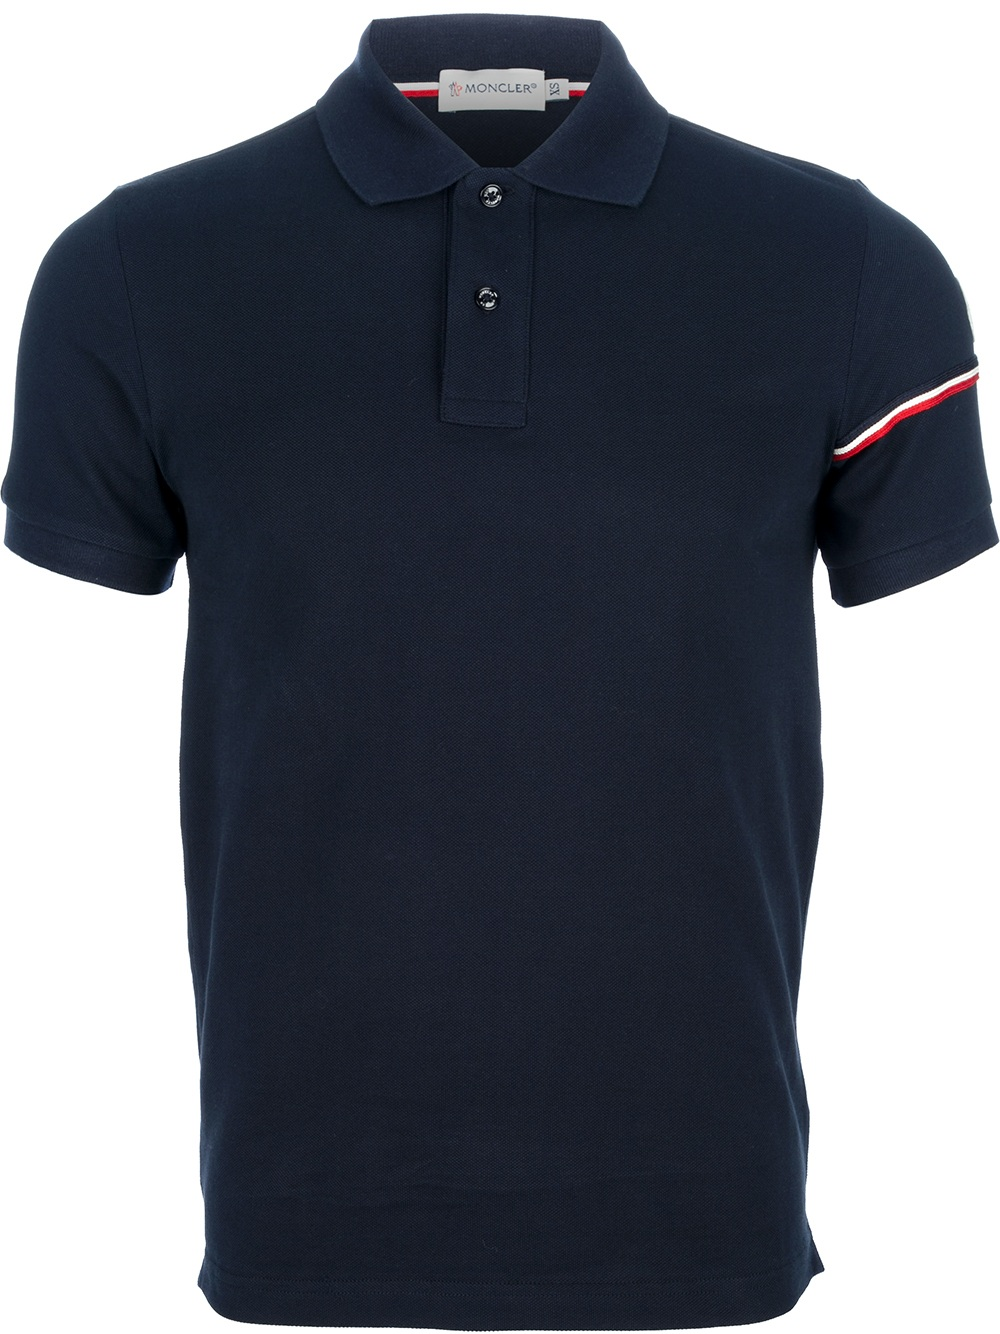 moncler classic polo shirt in blue for men navy lyst. Black Bedroom Furniture Sets. Home Design Ideas